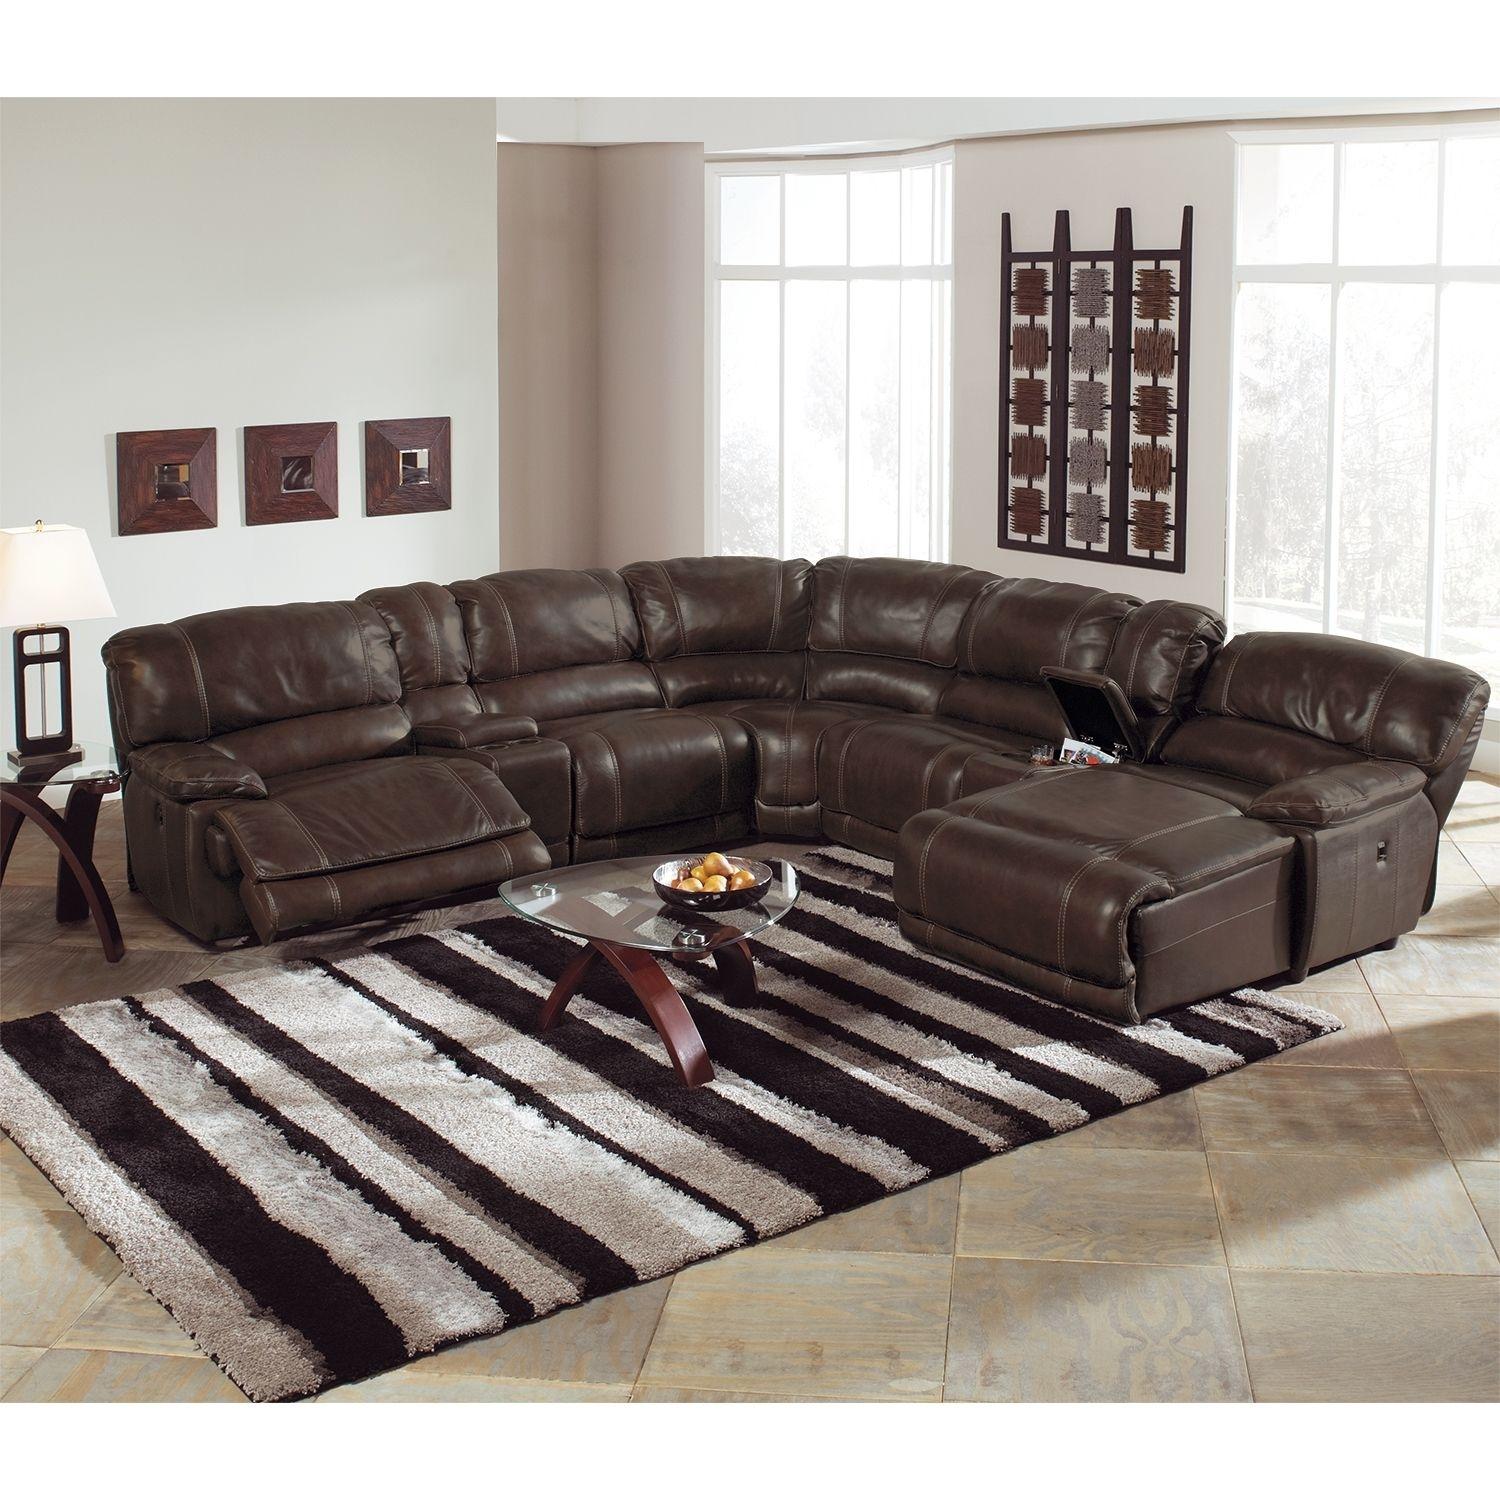 Living Room Furniture – Nikki 6 Piece Power Reclining Sectional With Within 6 Piece Leather Sectional Sofas (View 6 of 10)